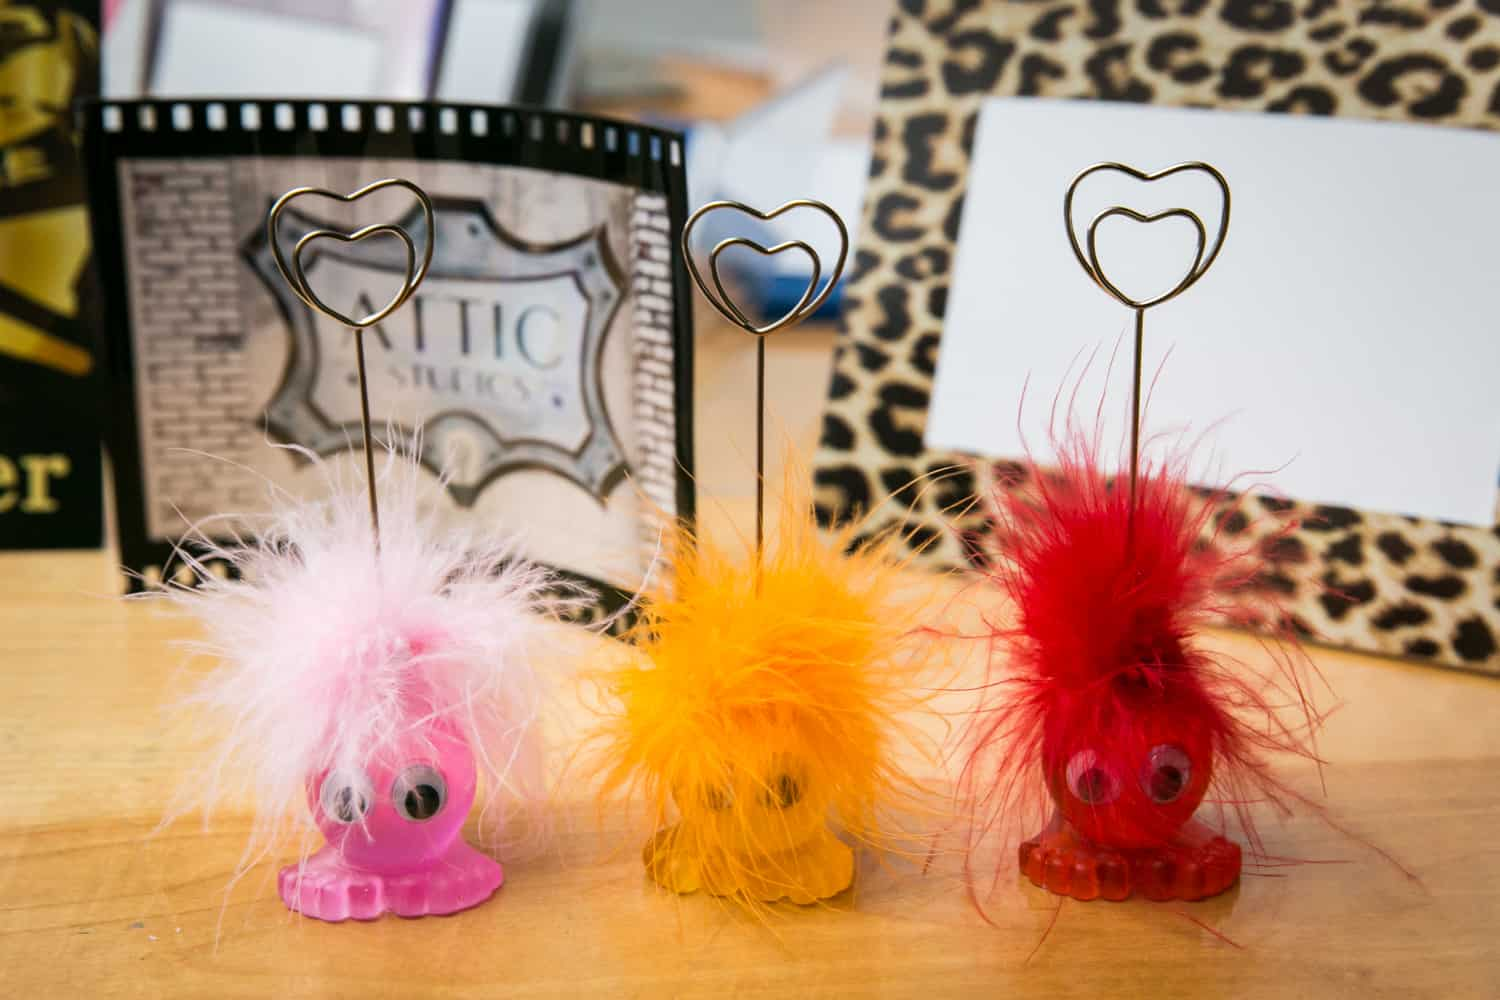 Three colorful, fuzzy photo holders on table